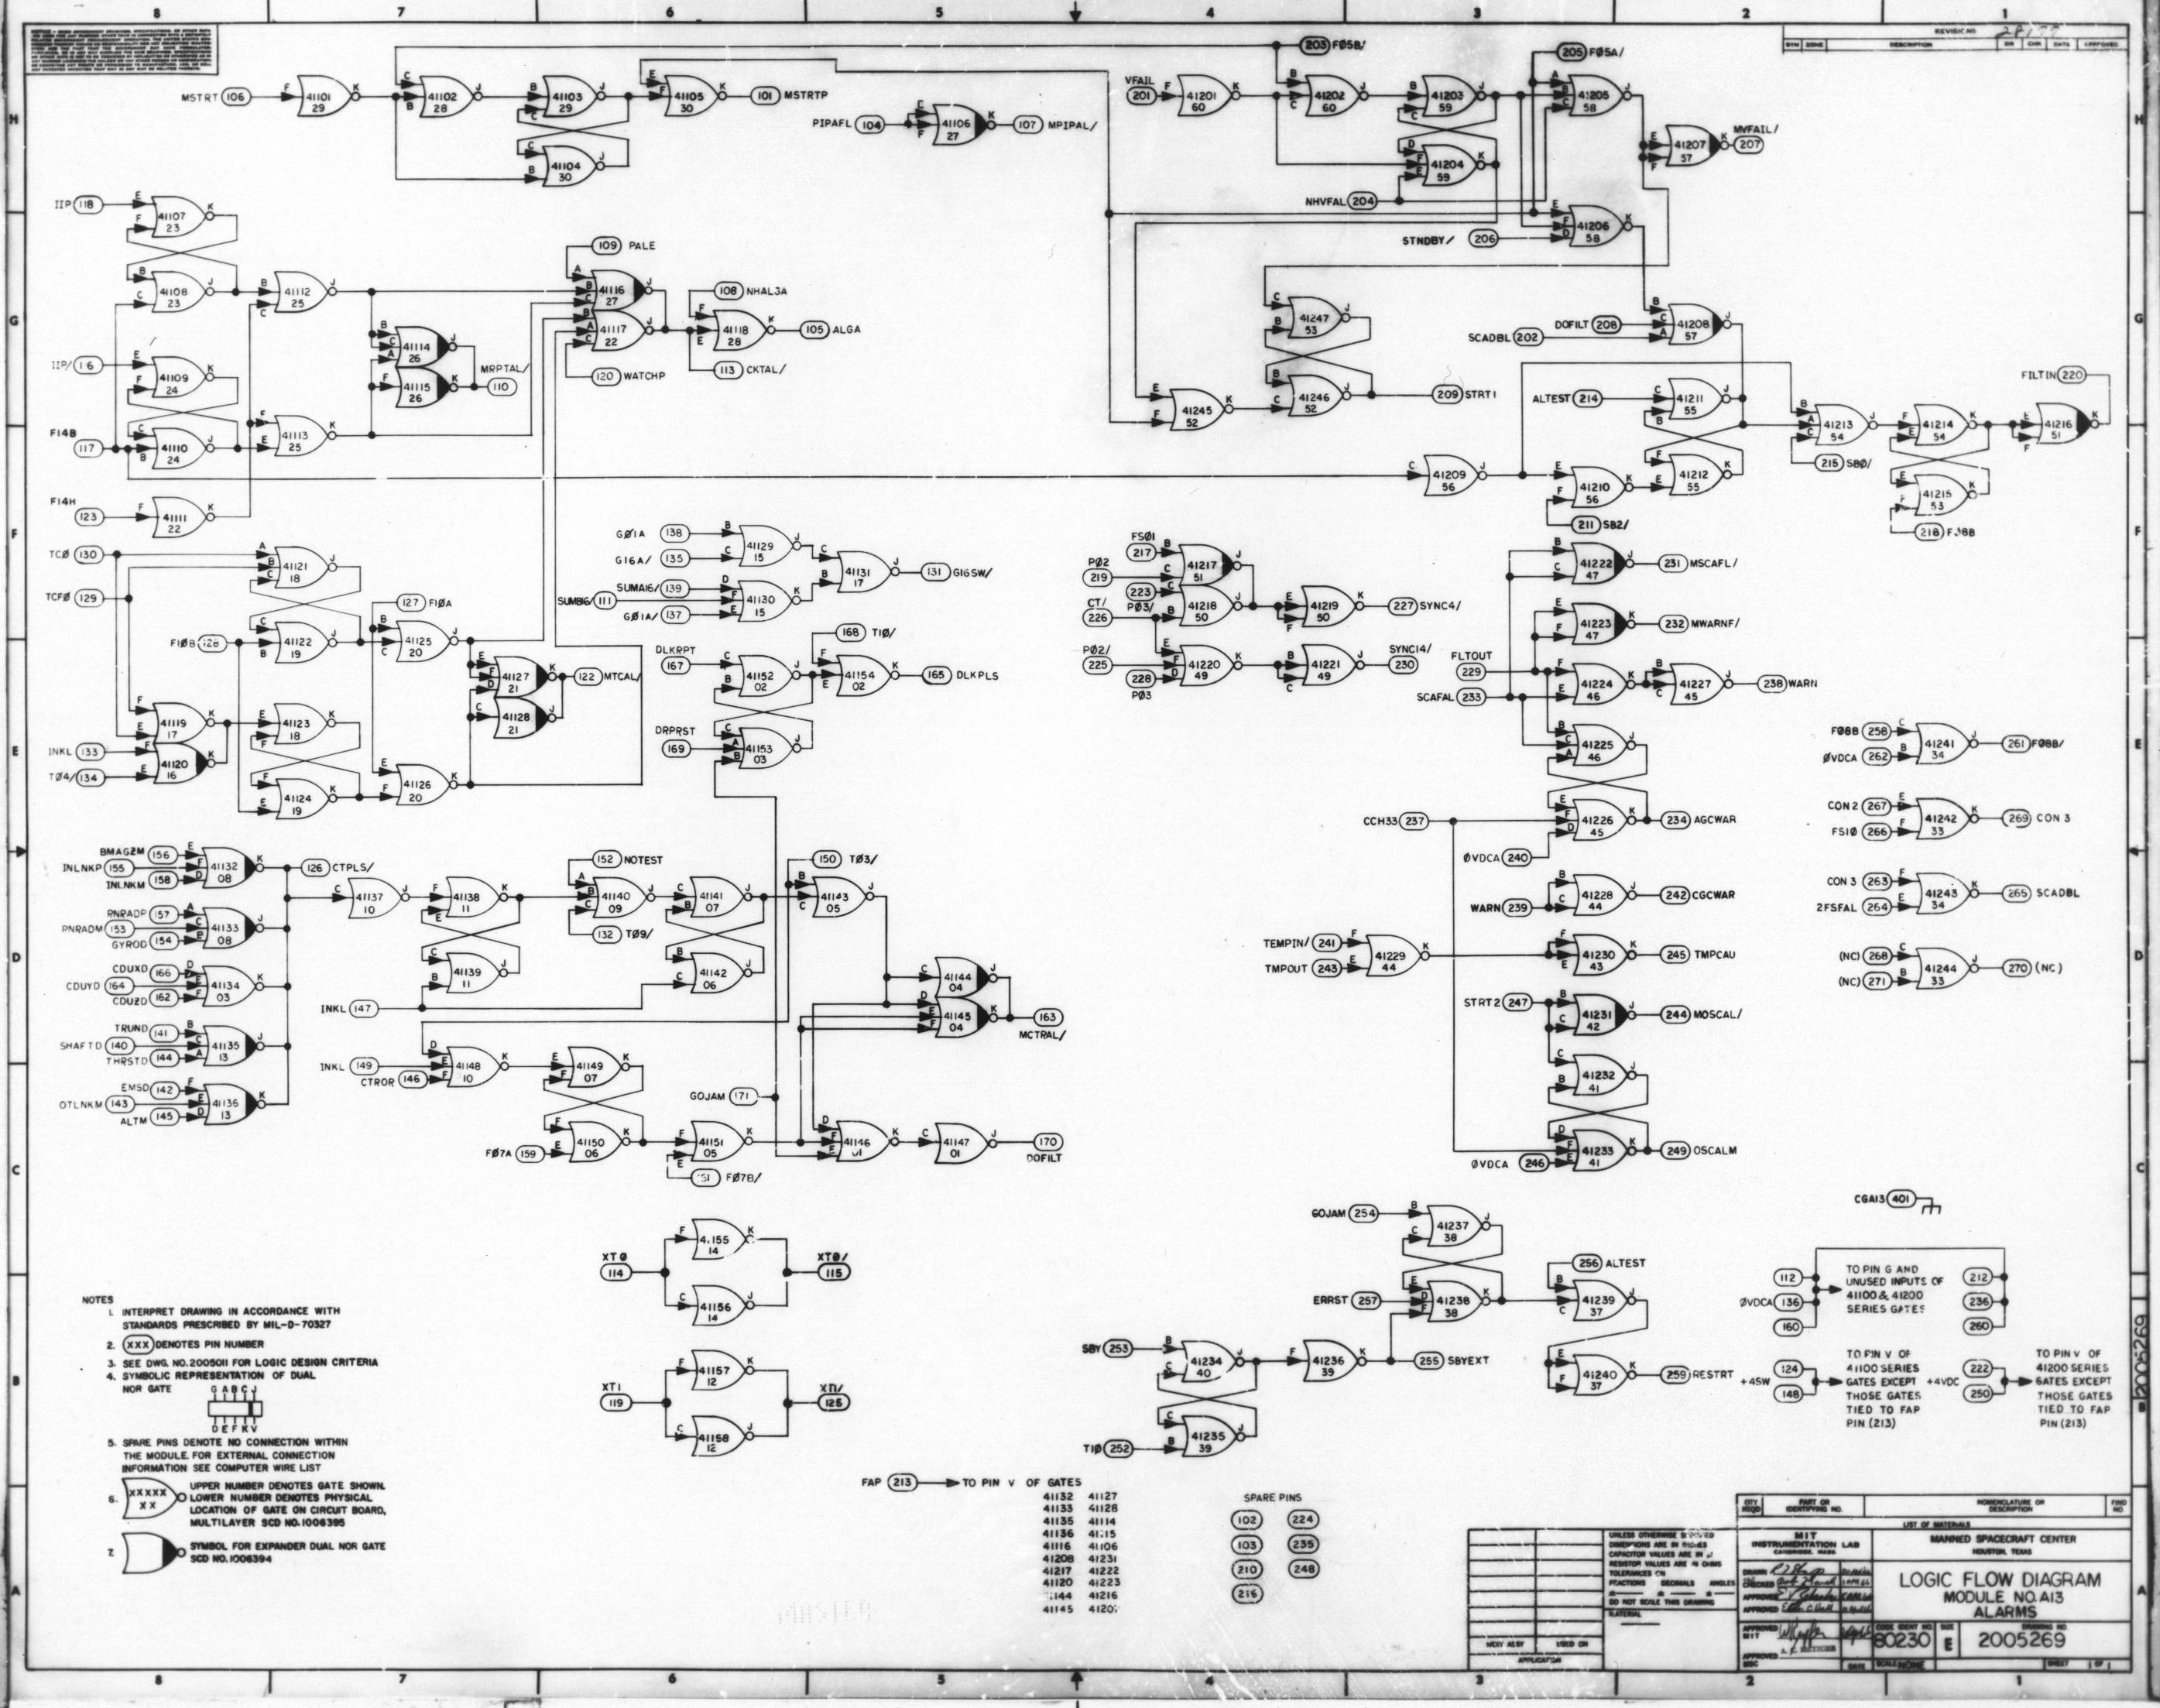 Standard Schematic Editor The Flat And Hierarchical Schematic Page